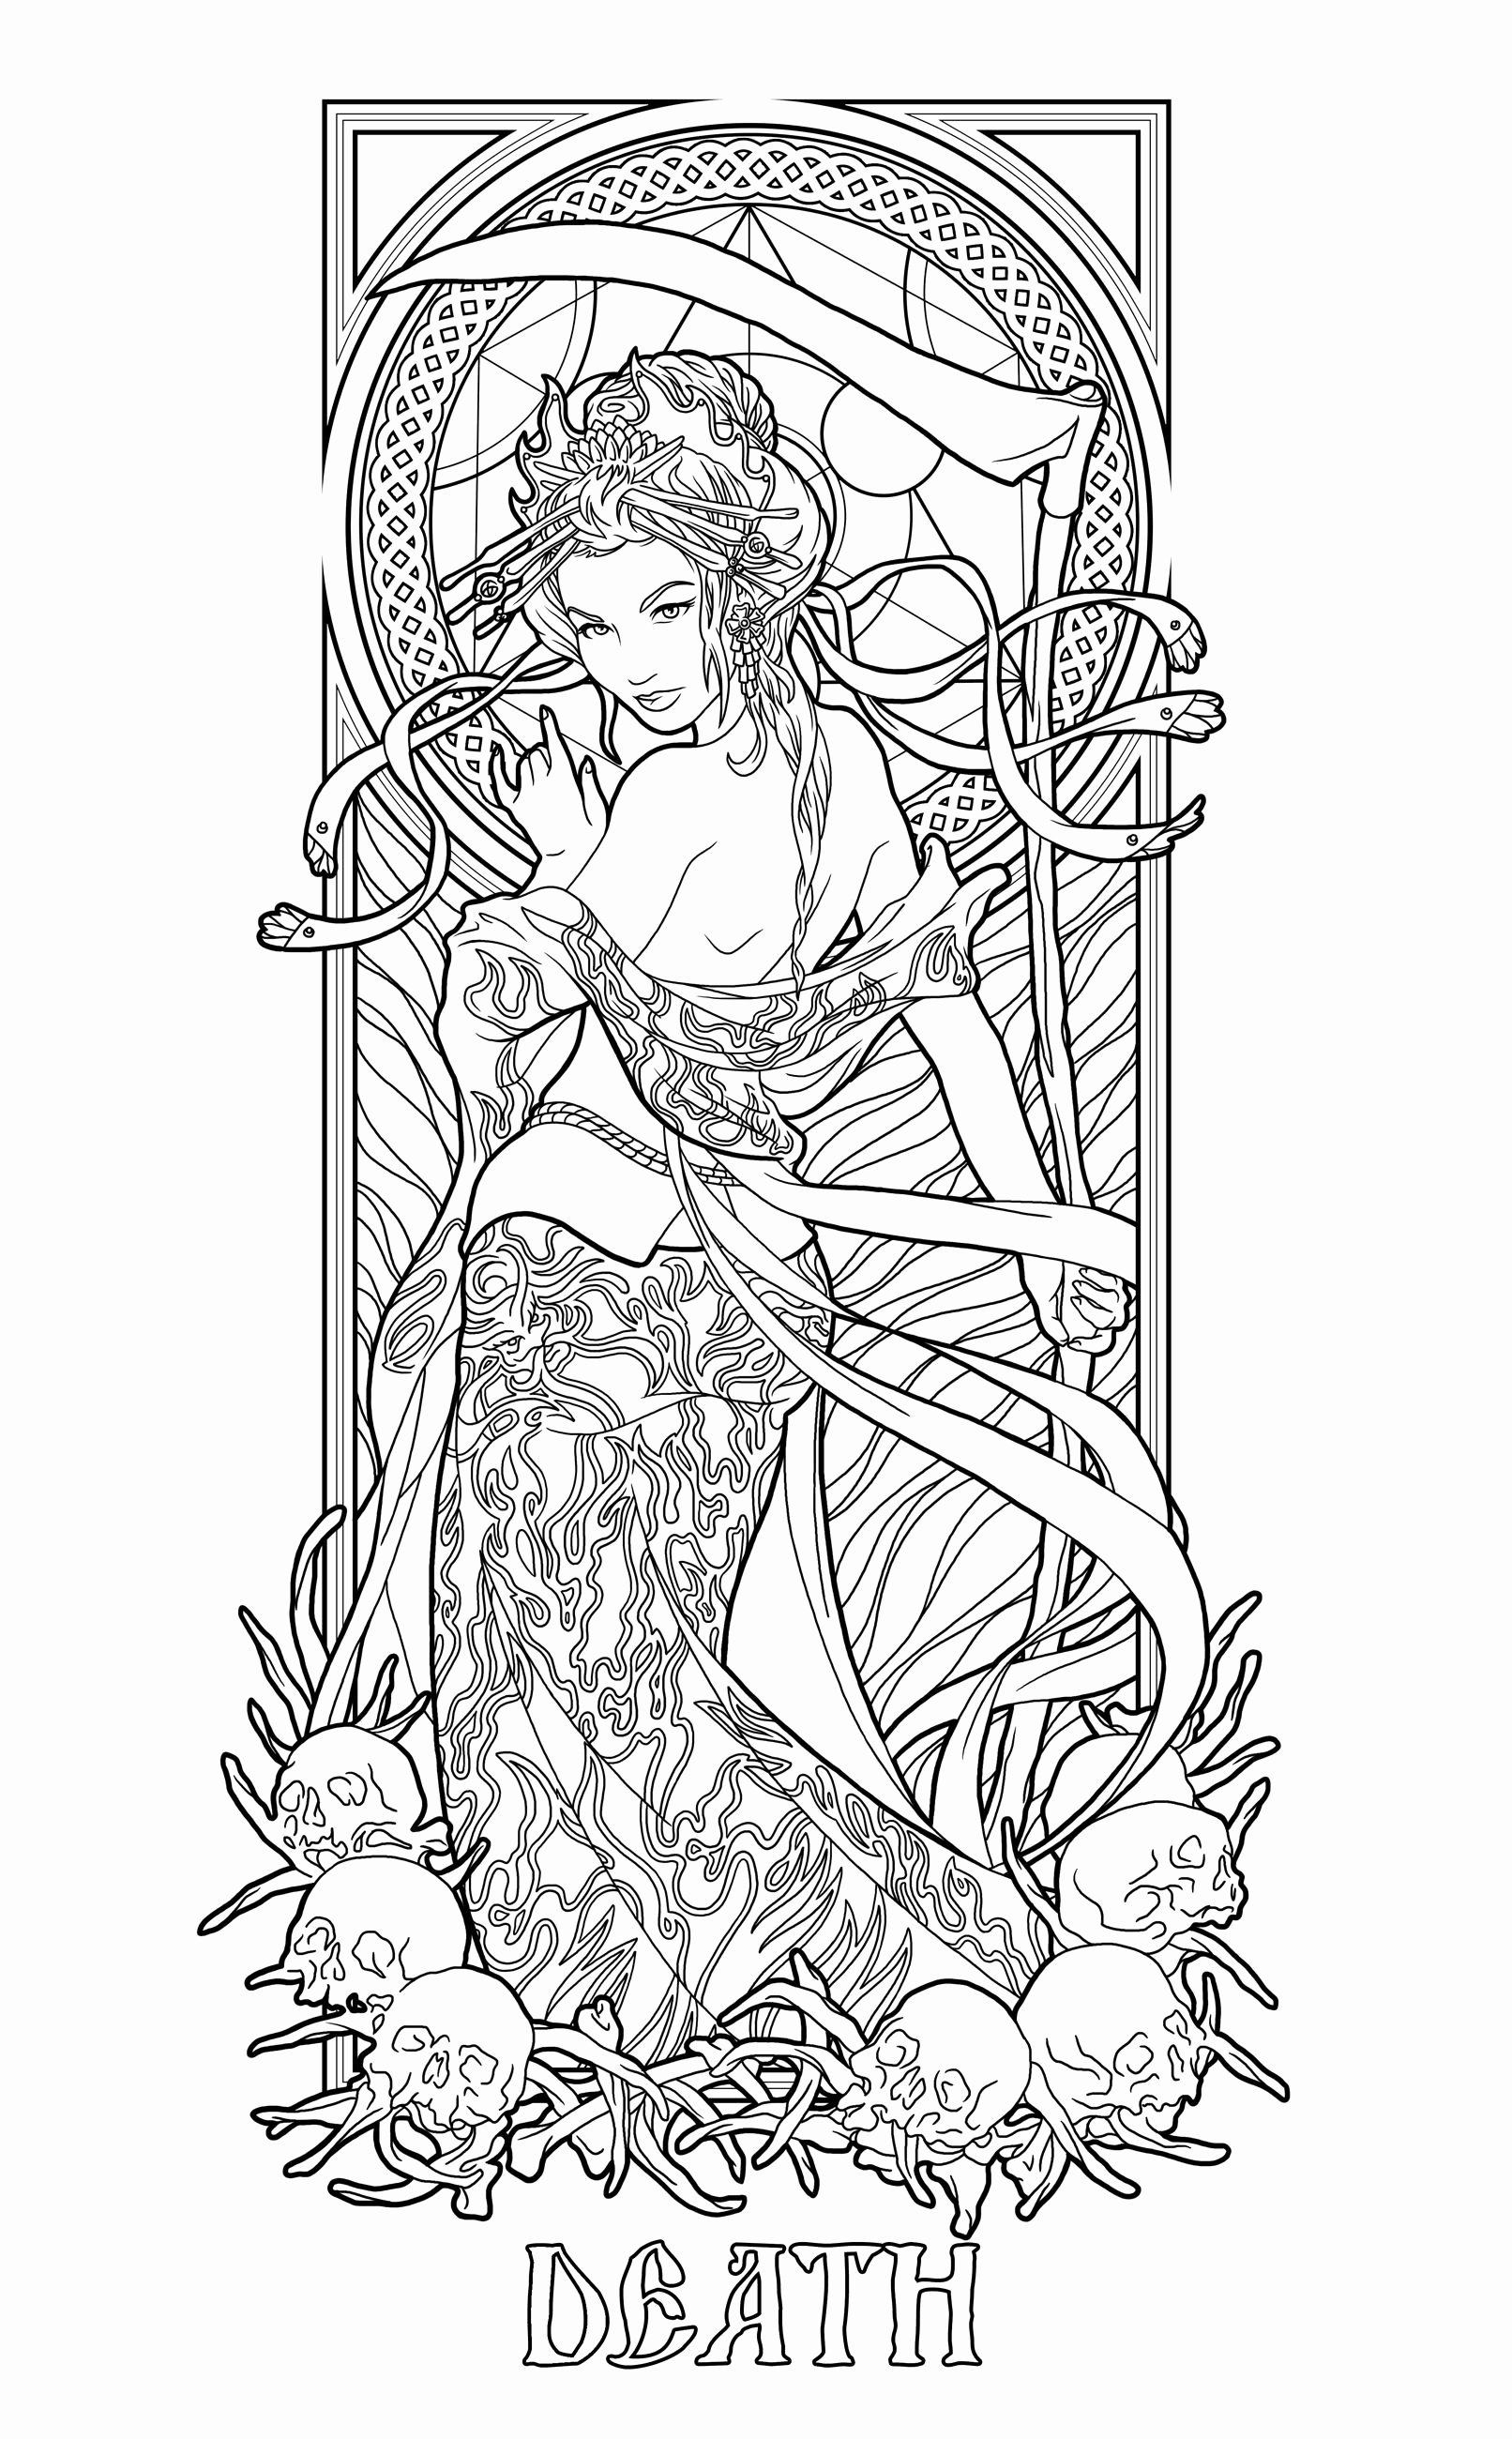 halloween costumes coloring pages Collection-Halloween Costumes Coloring Pages Heathermarxgallery Types Halloween Costumes Coupon 6-n